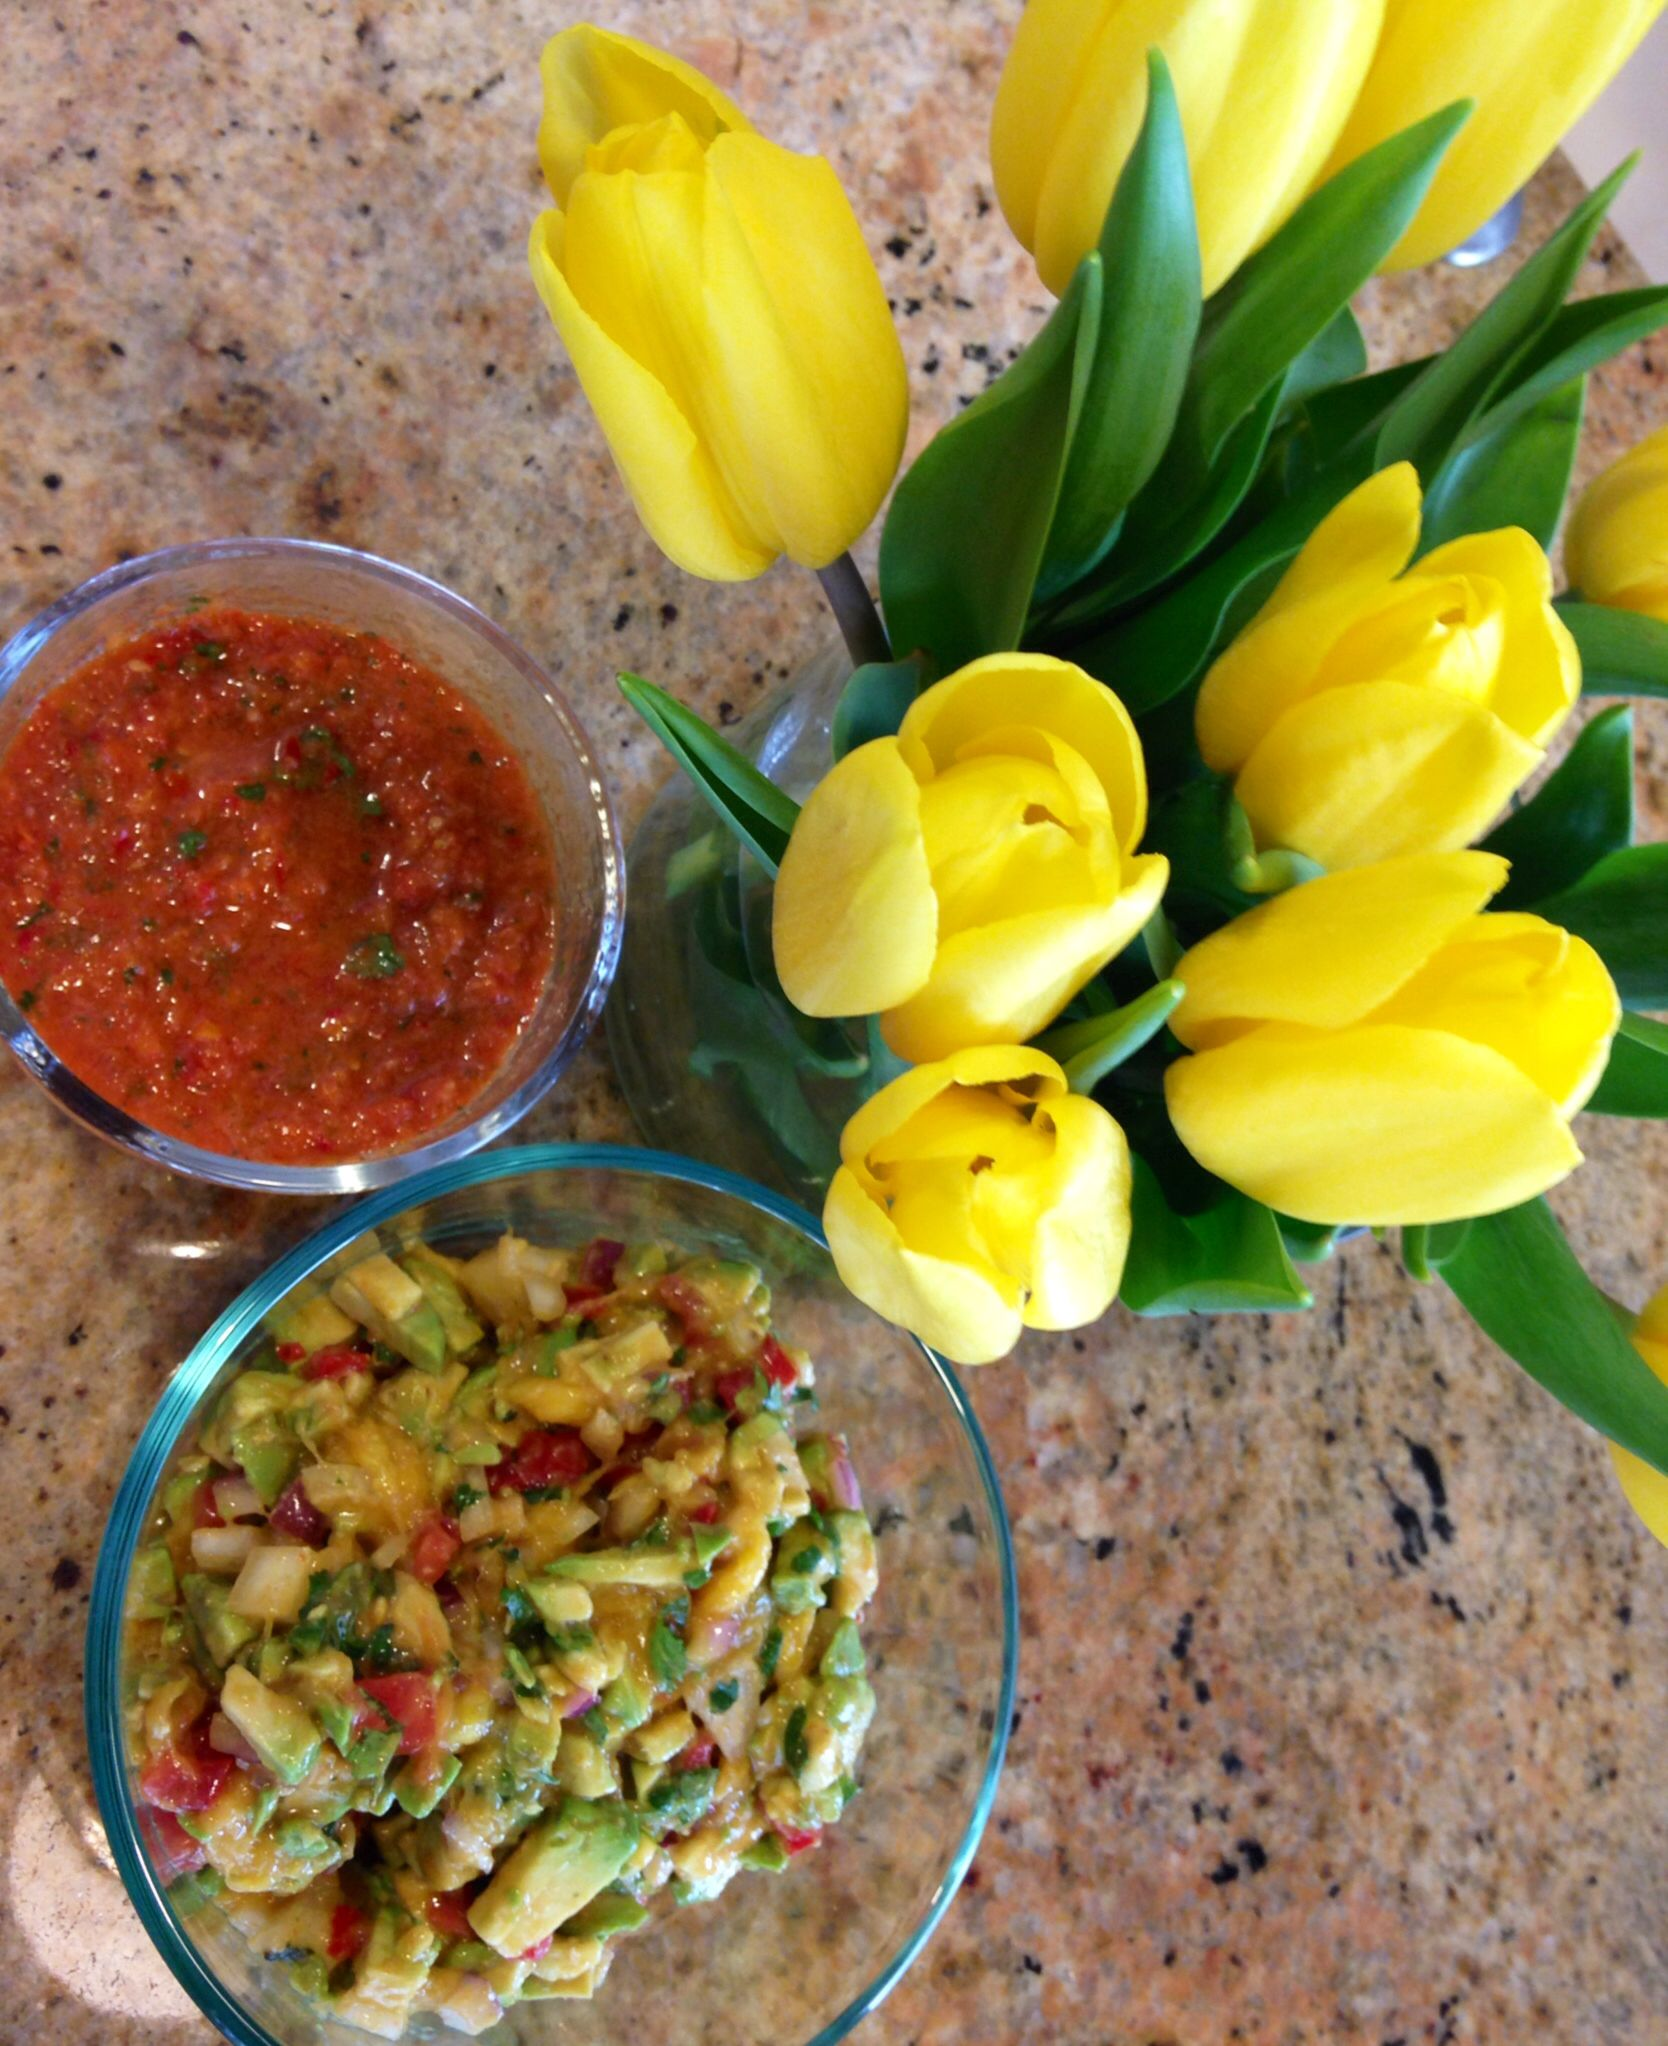 Easter avo and mango guac with homemade salsa